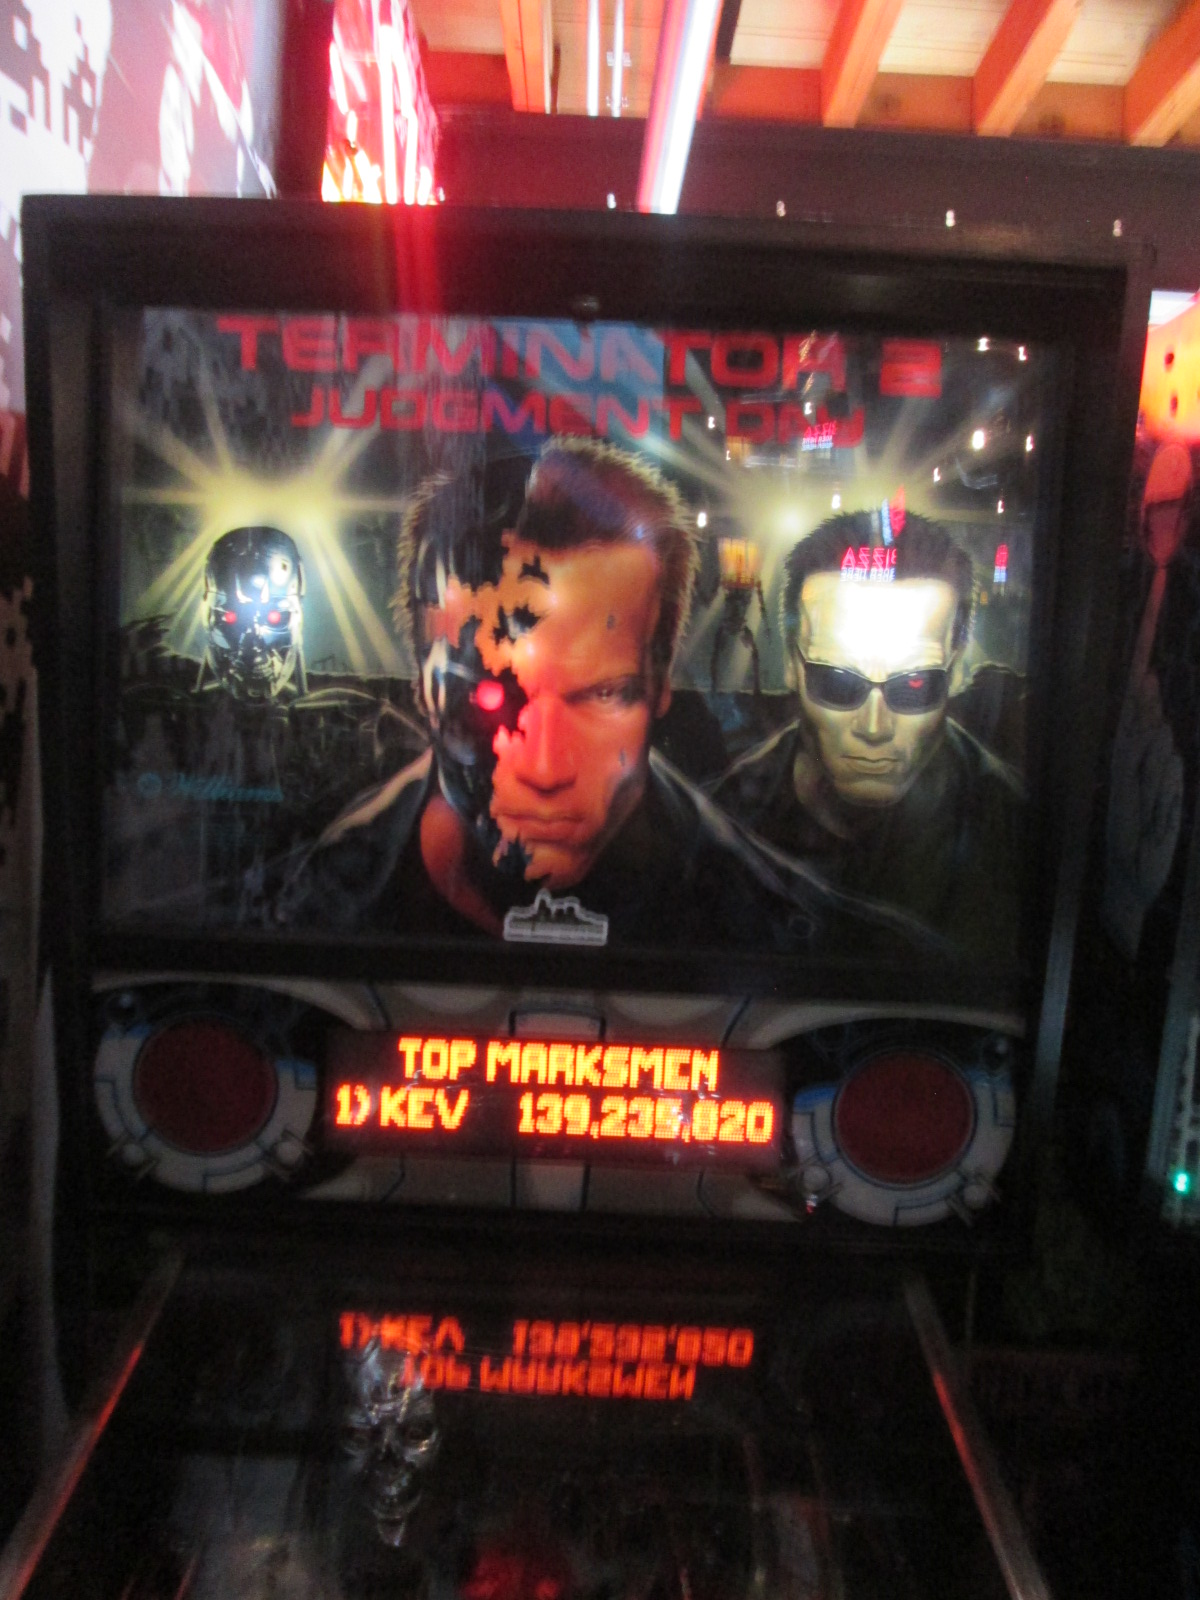 ed1475: Terminator 2: Judgement Day (Pinball: 3 Balls) 3,166,660 points on 2016-08-28 17:00:45